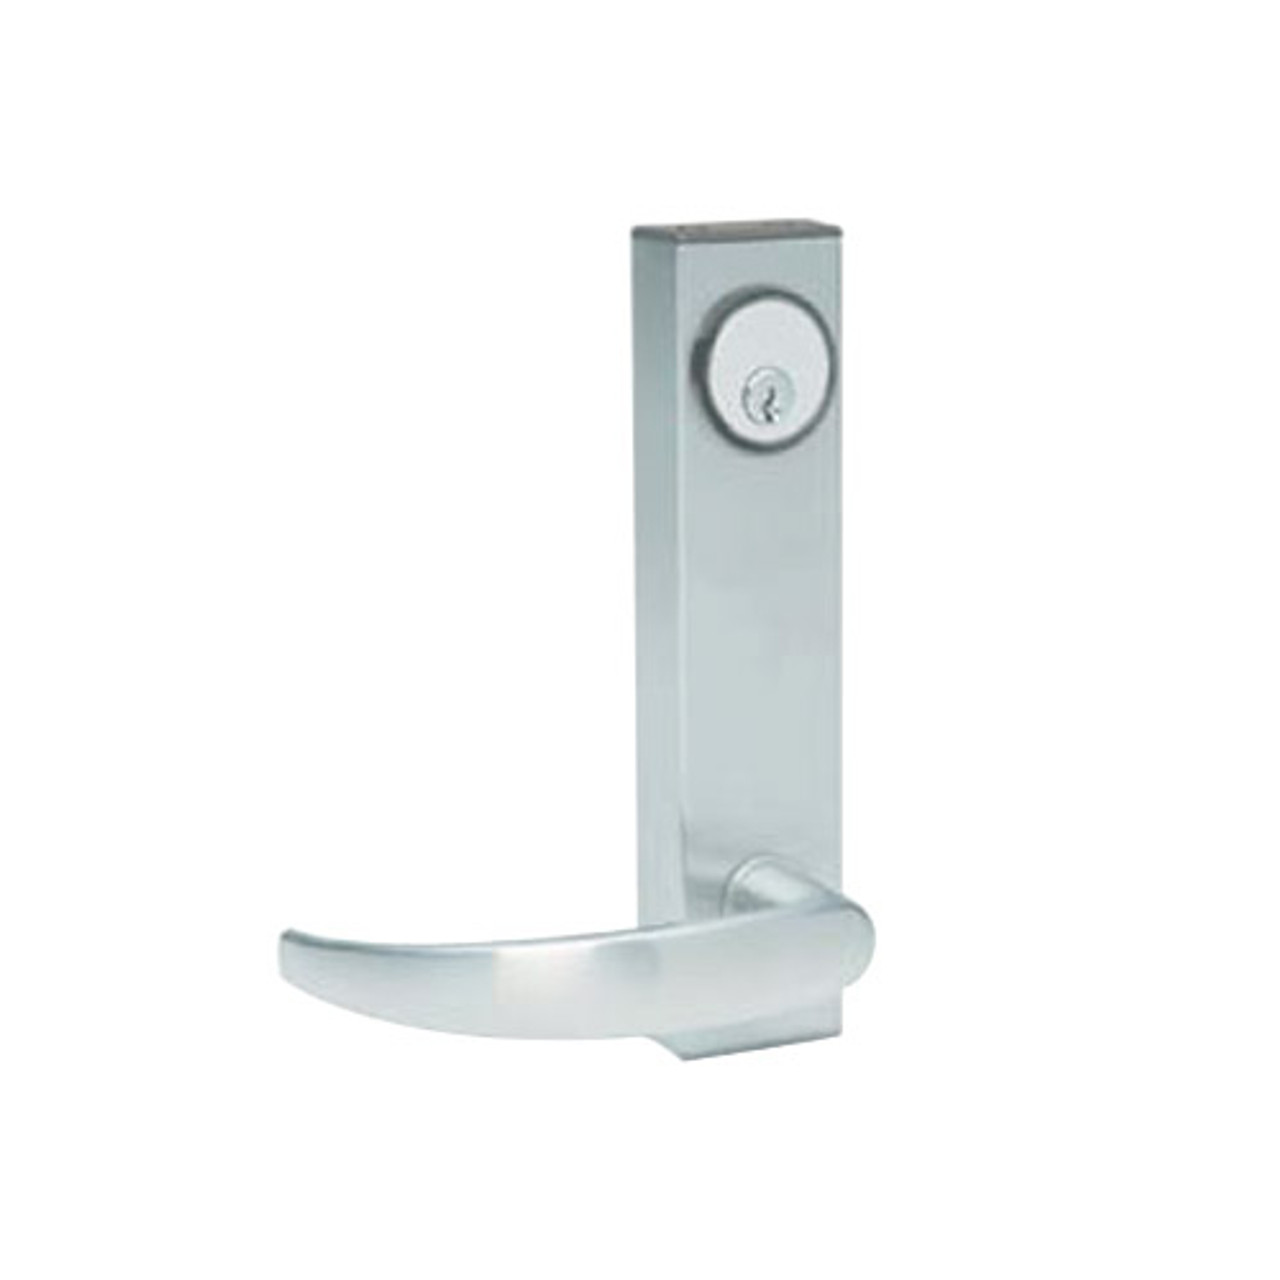 3080E-01-0-91-55 US32 Adams Rite Electrified Entry Trim with Curve Lever in Bright Stainless Finish